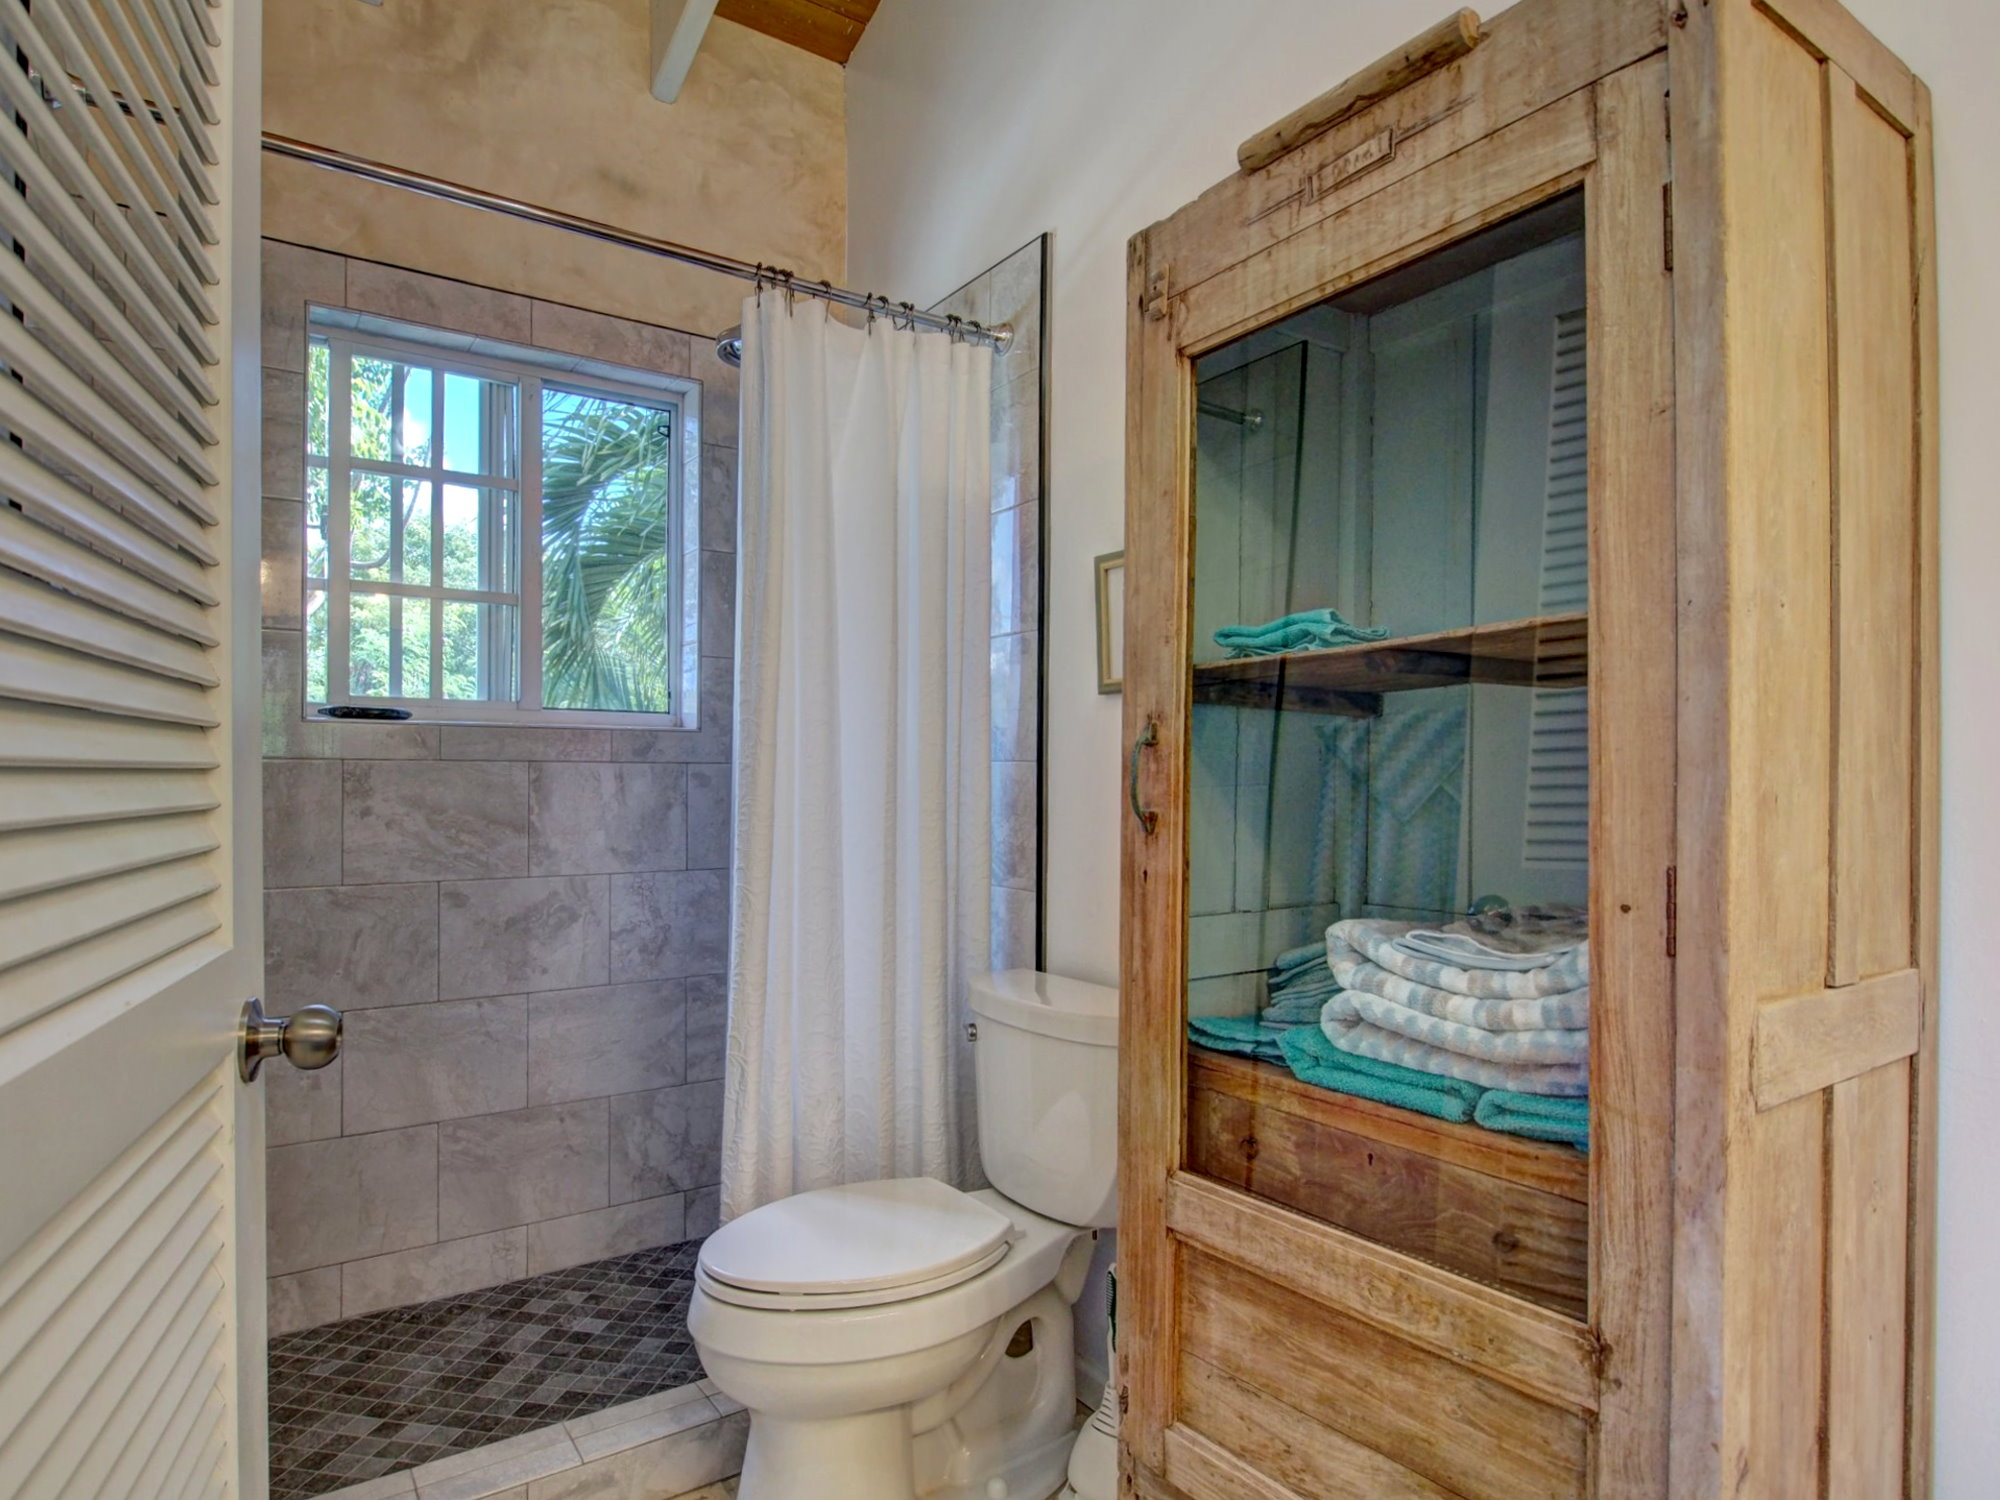 Bathroom with natural light and Caribbean Vegetation